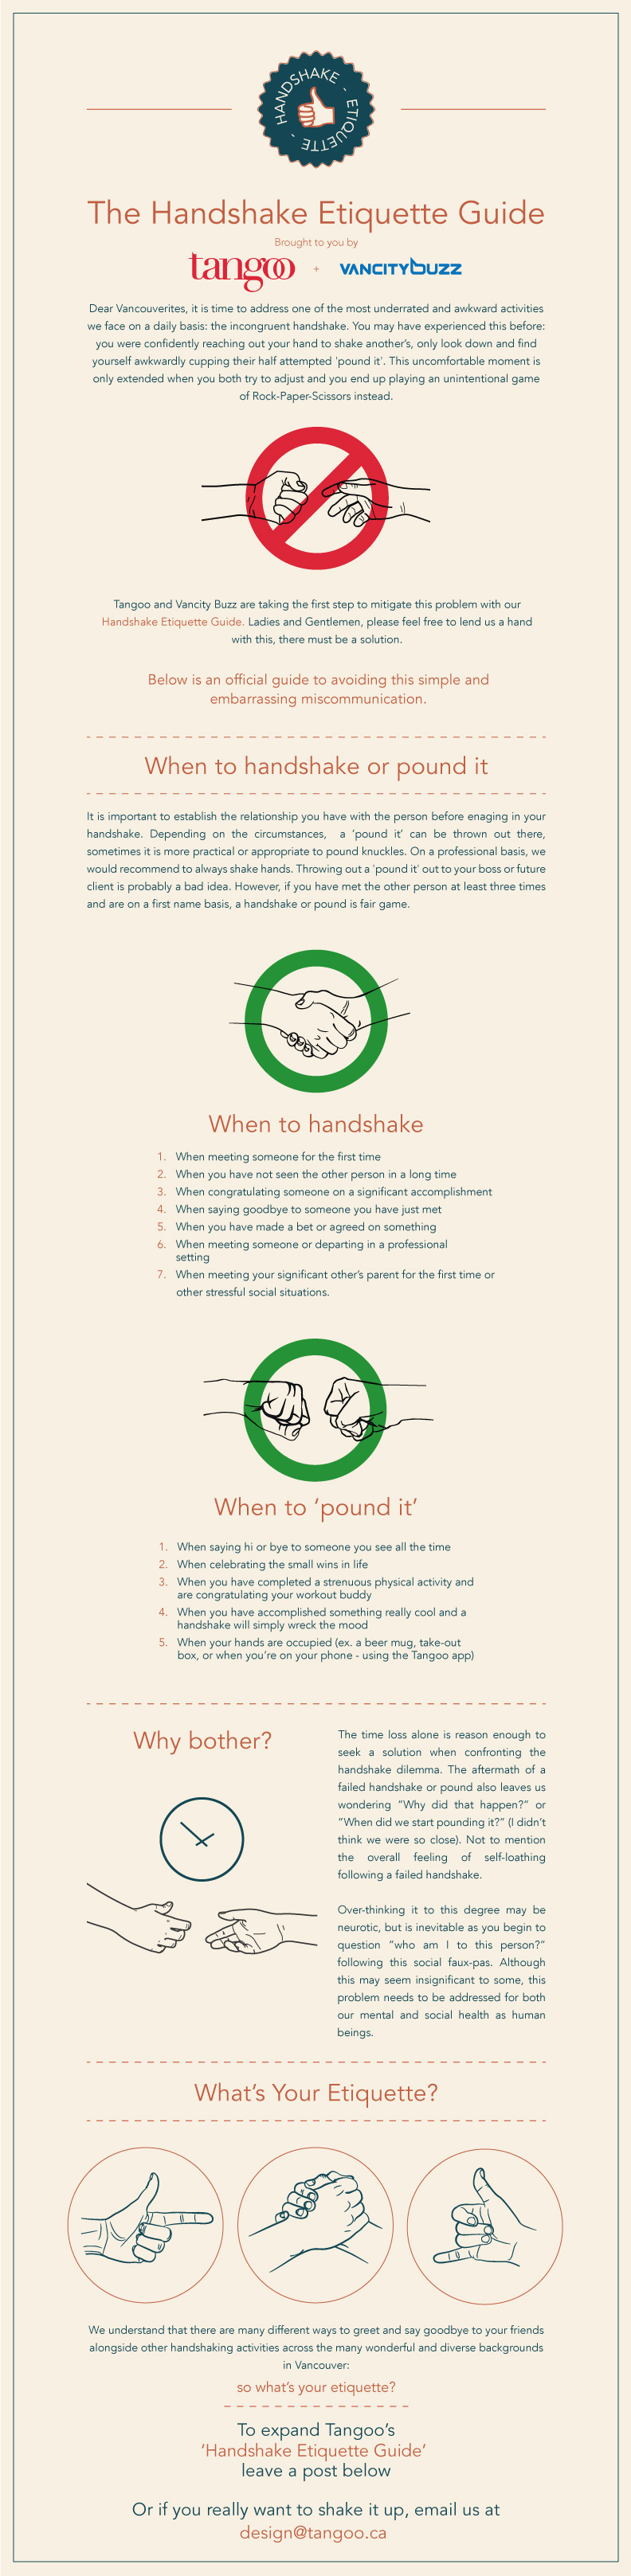 The Handshake Etiquette Guide brought to you by Tangoo